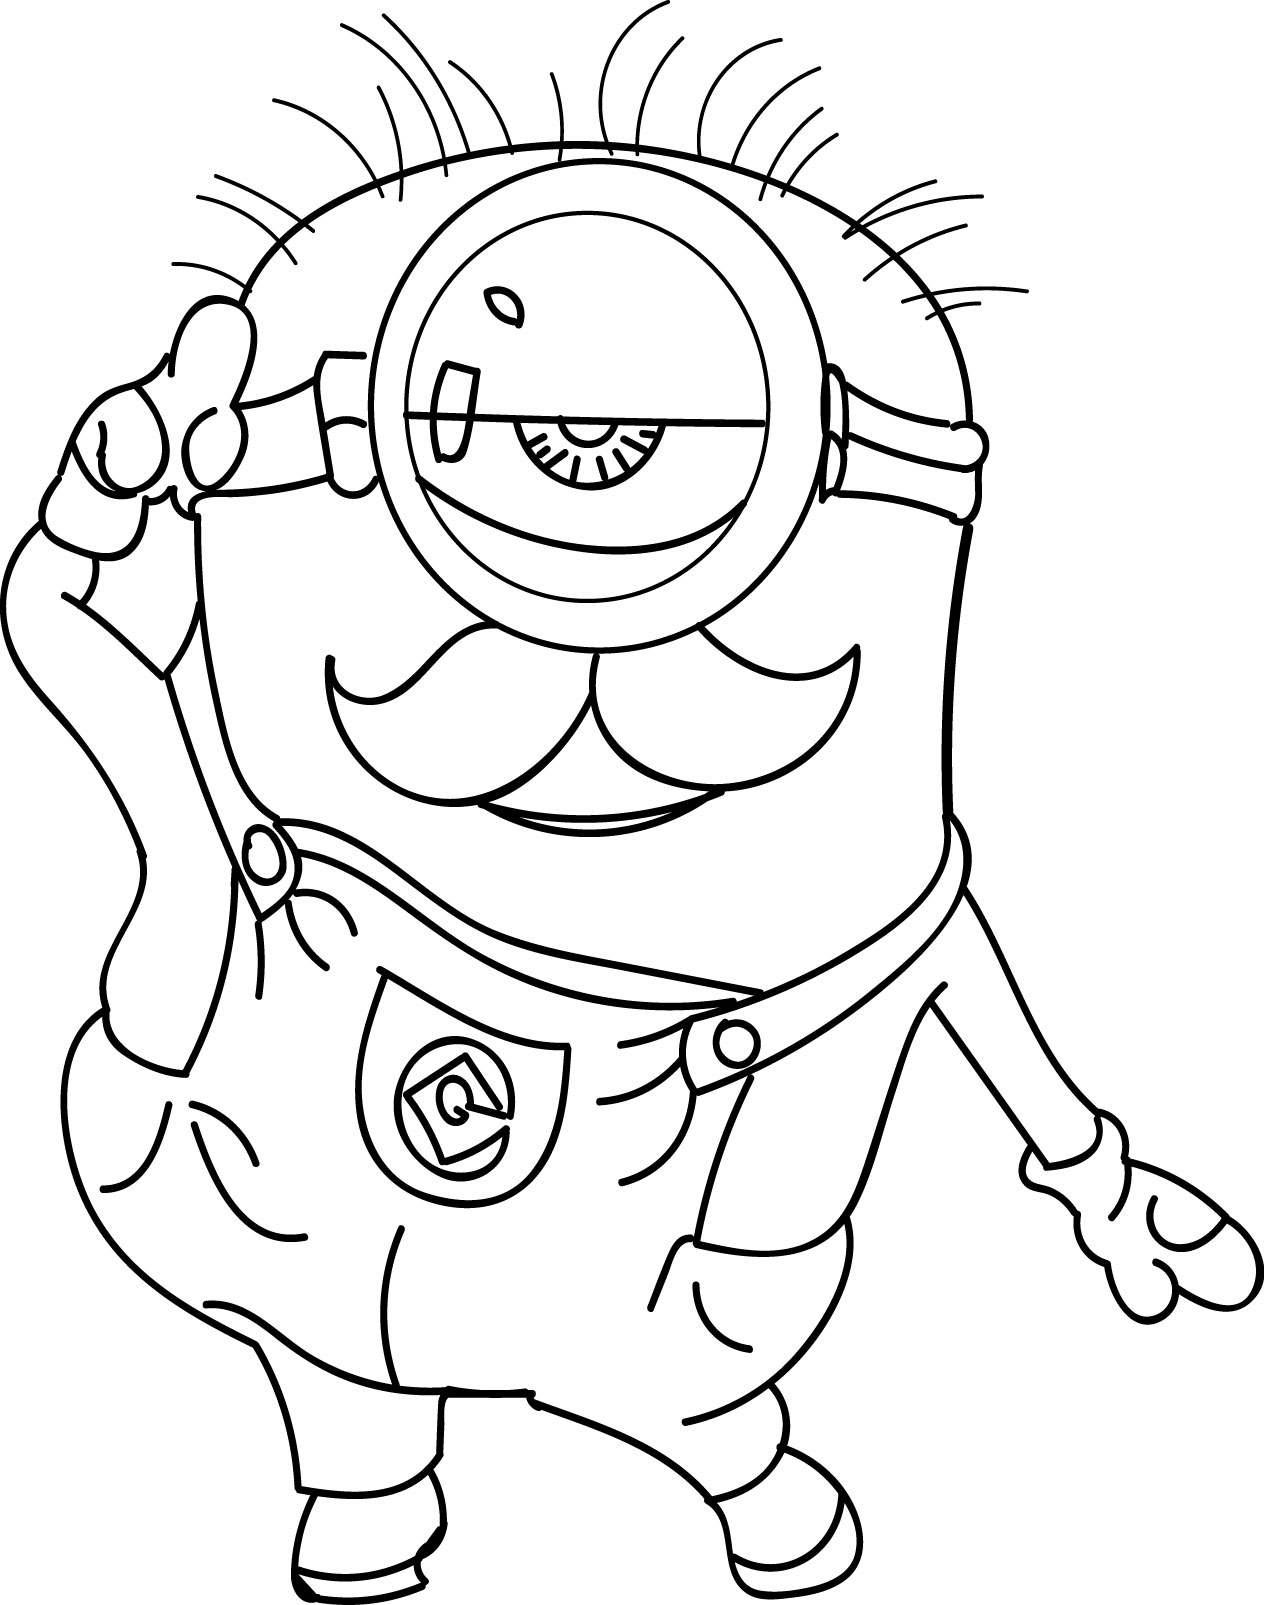 minions coloring pages banana split - photo#18